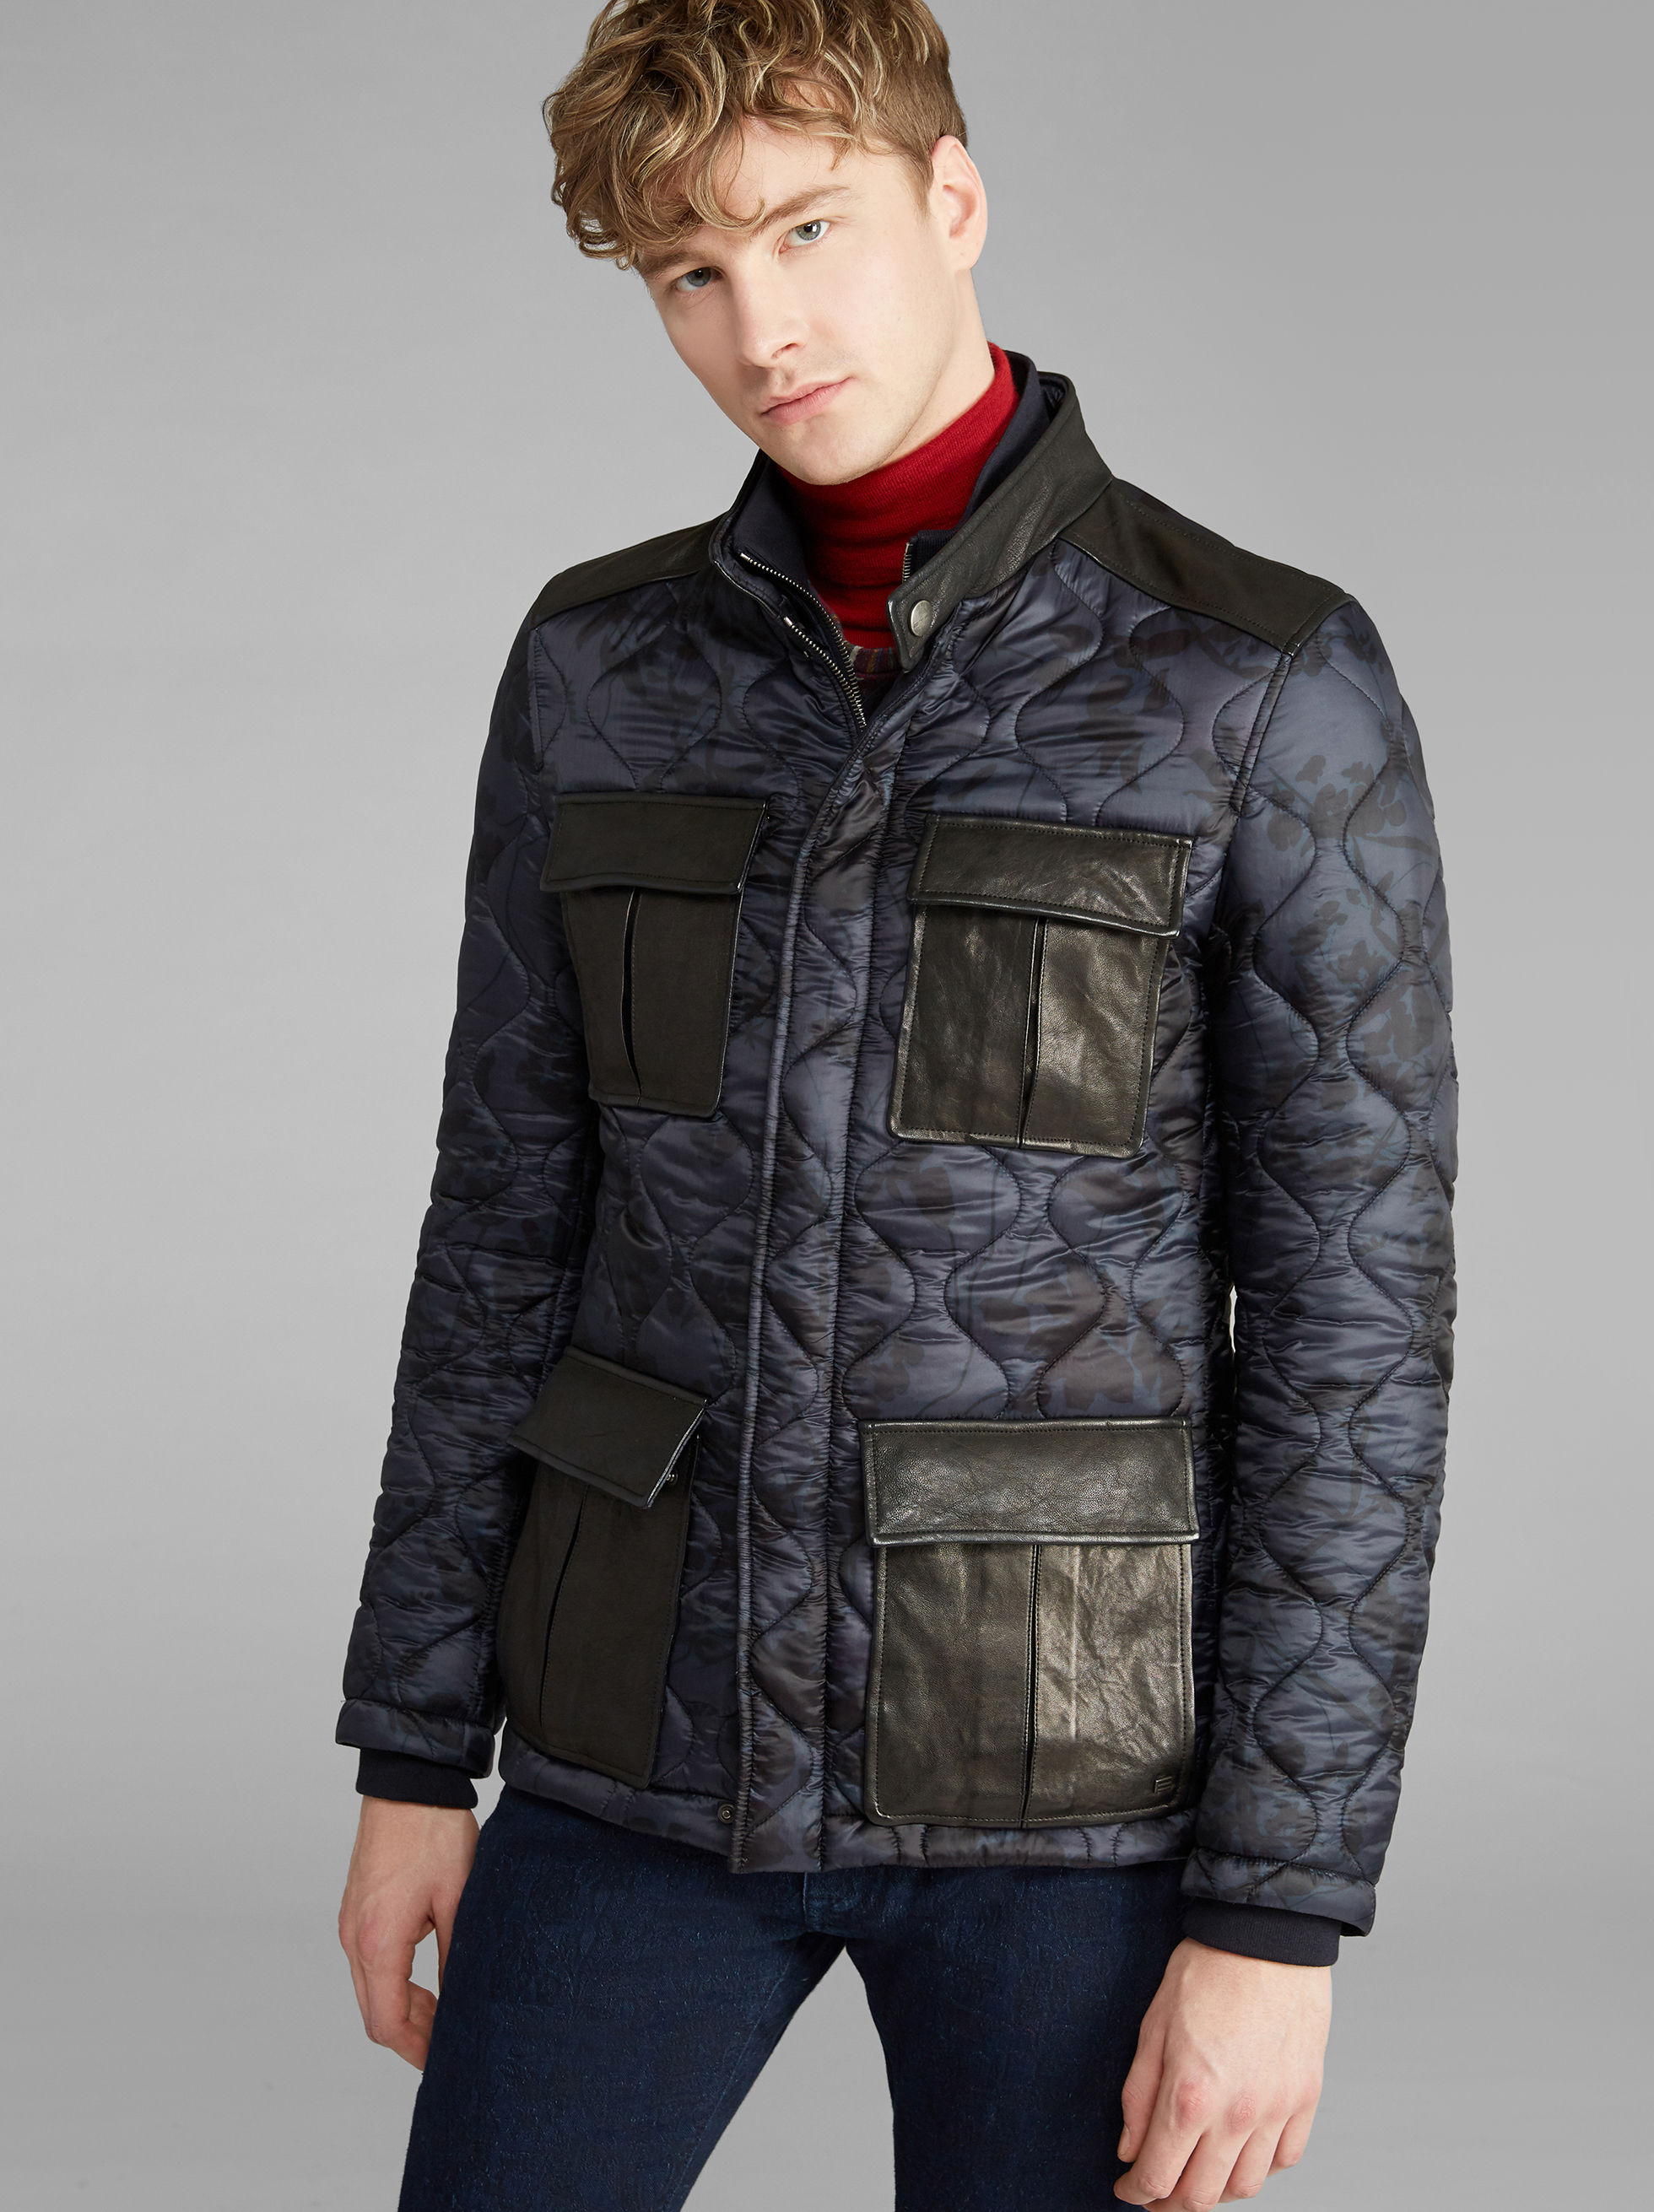 PADDED SAFARI JACKET WITH SPORT WAISTCOAT